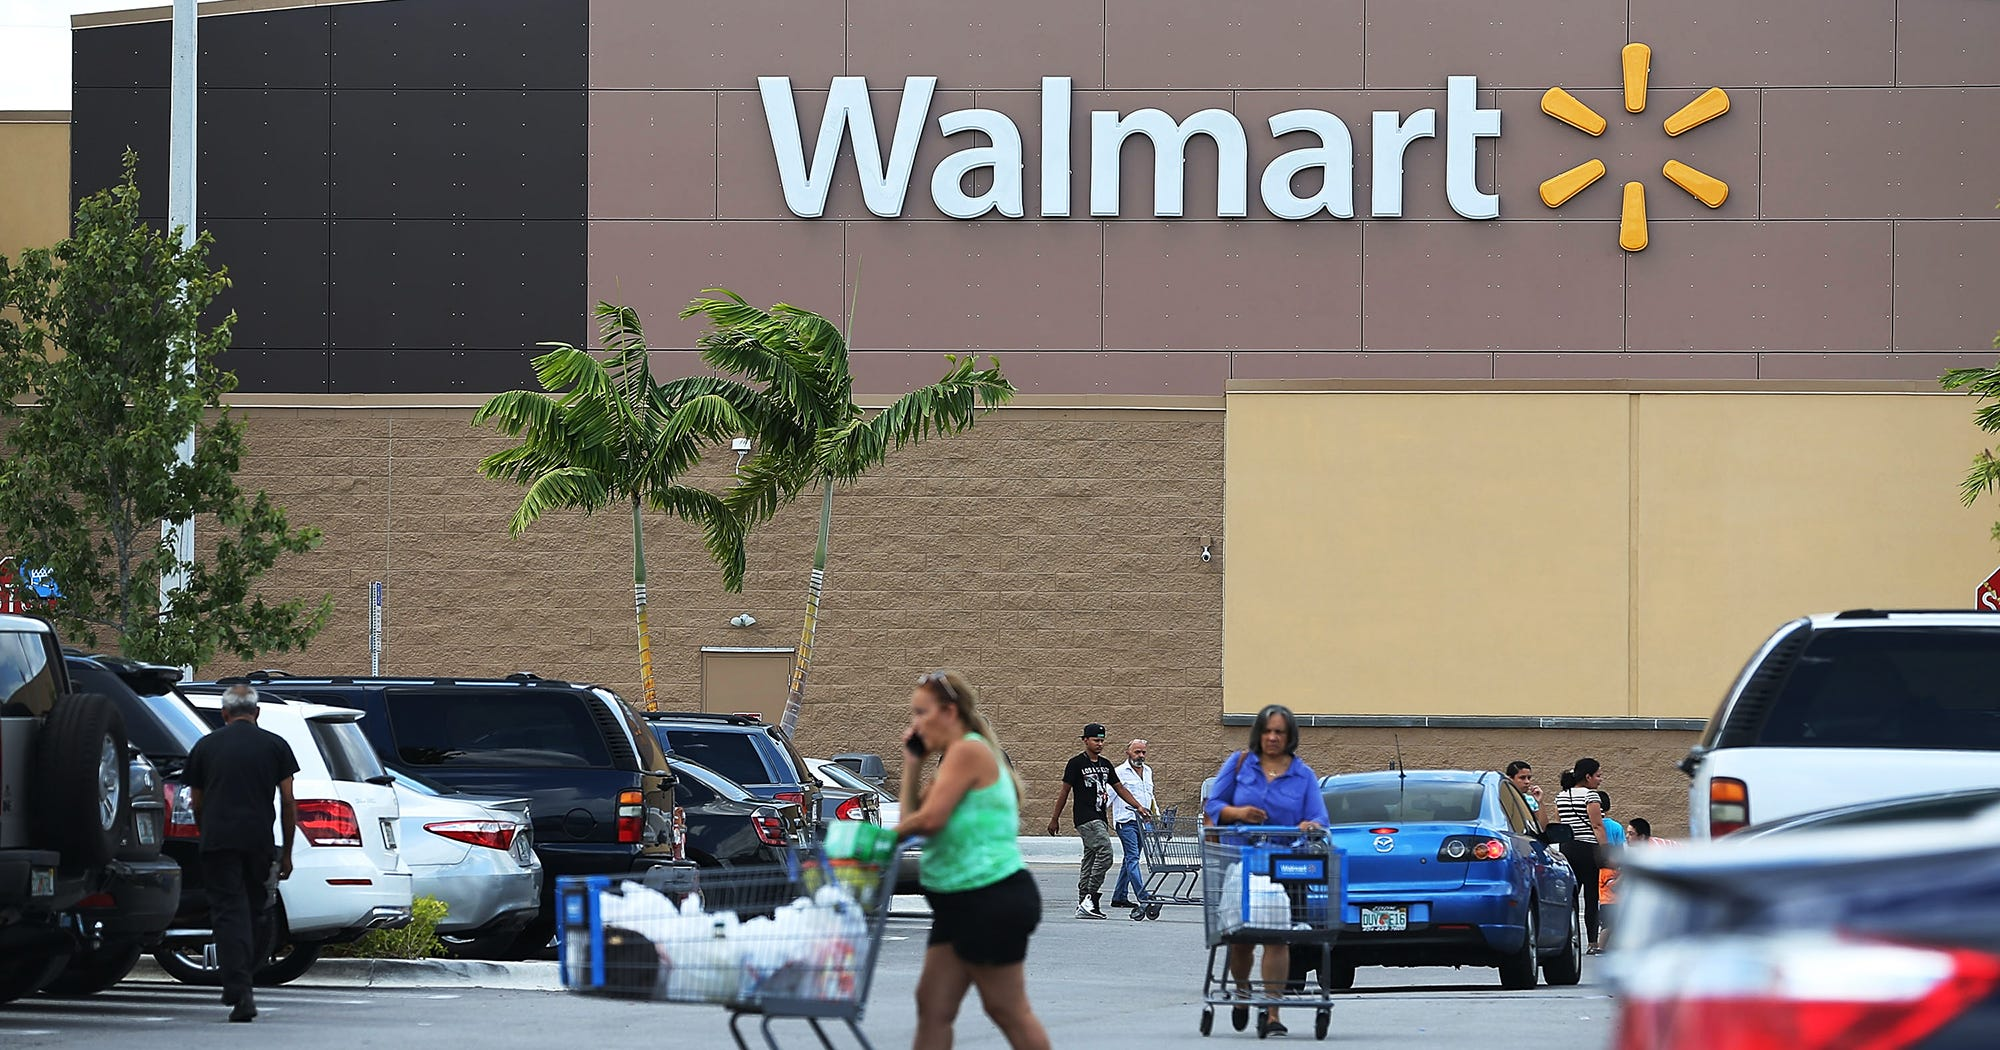 Walmart Pulls Violent Images But Continues To Sell Guns